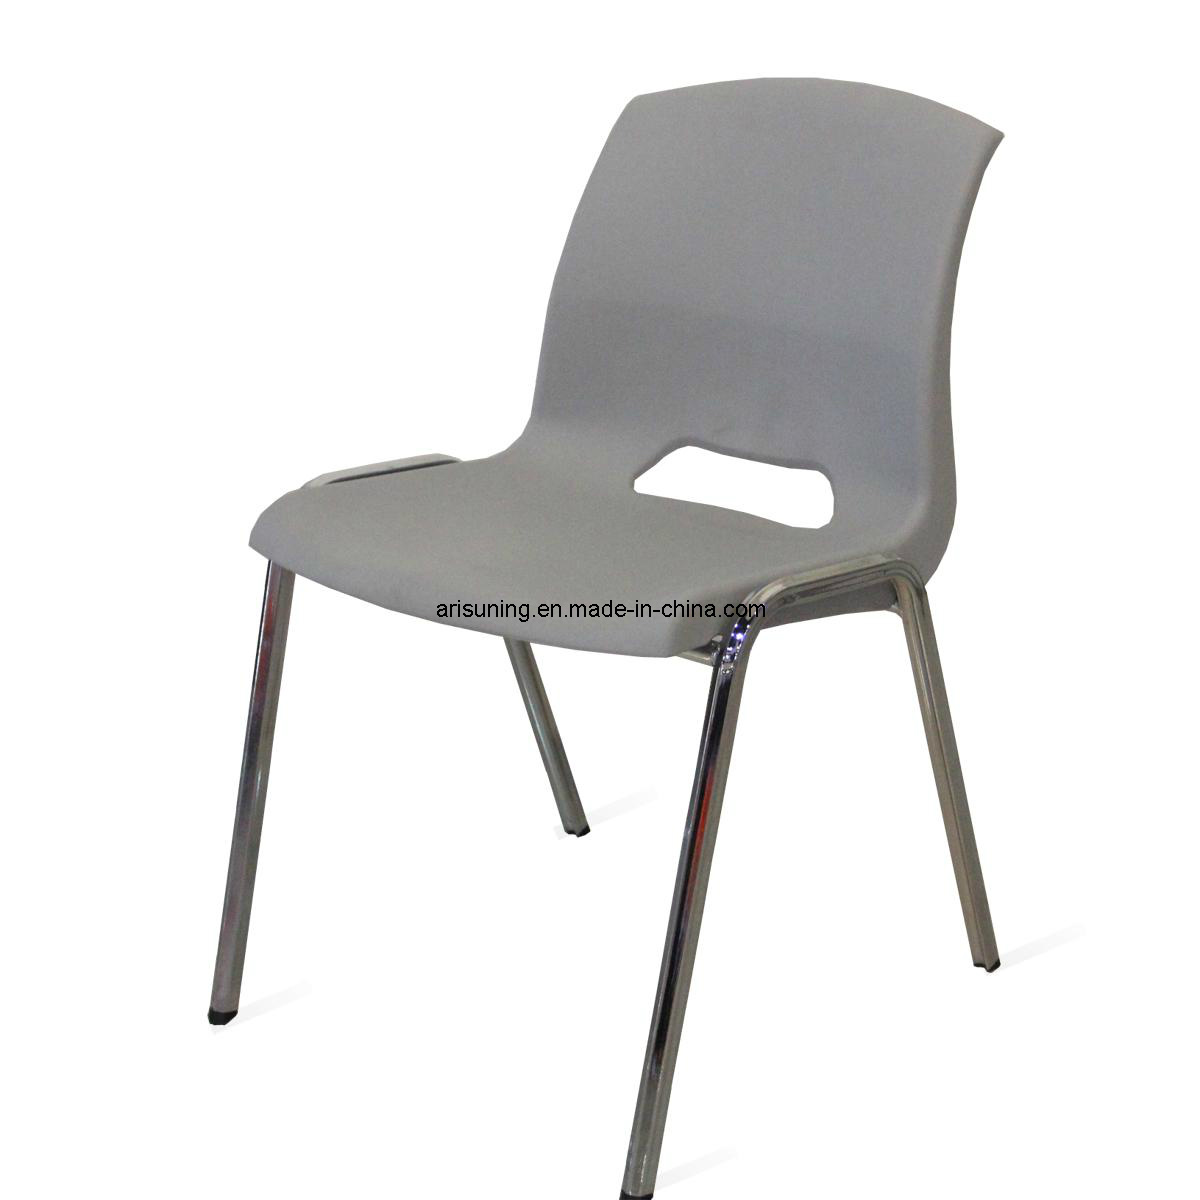 Chaise empilable en plastique 1222 de formation de bureau for Chaise de plastique